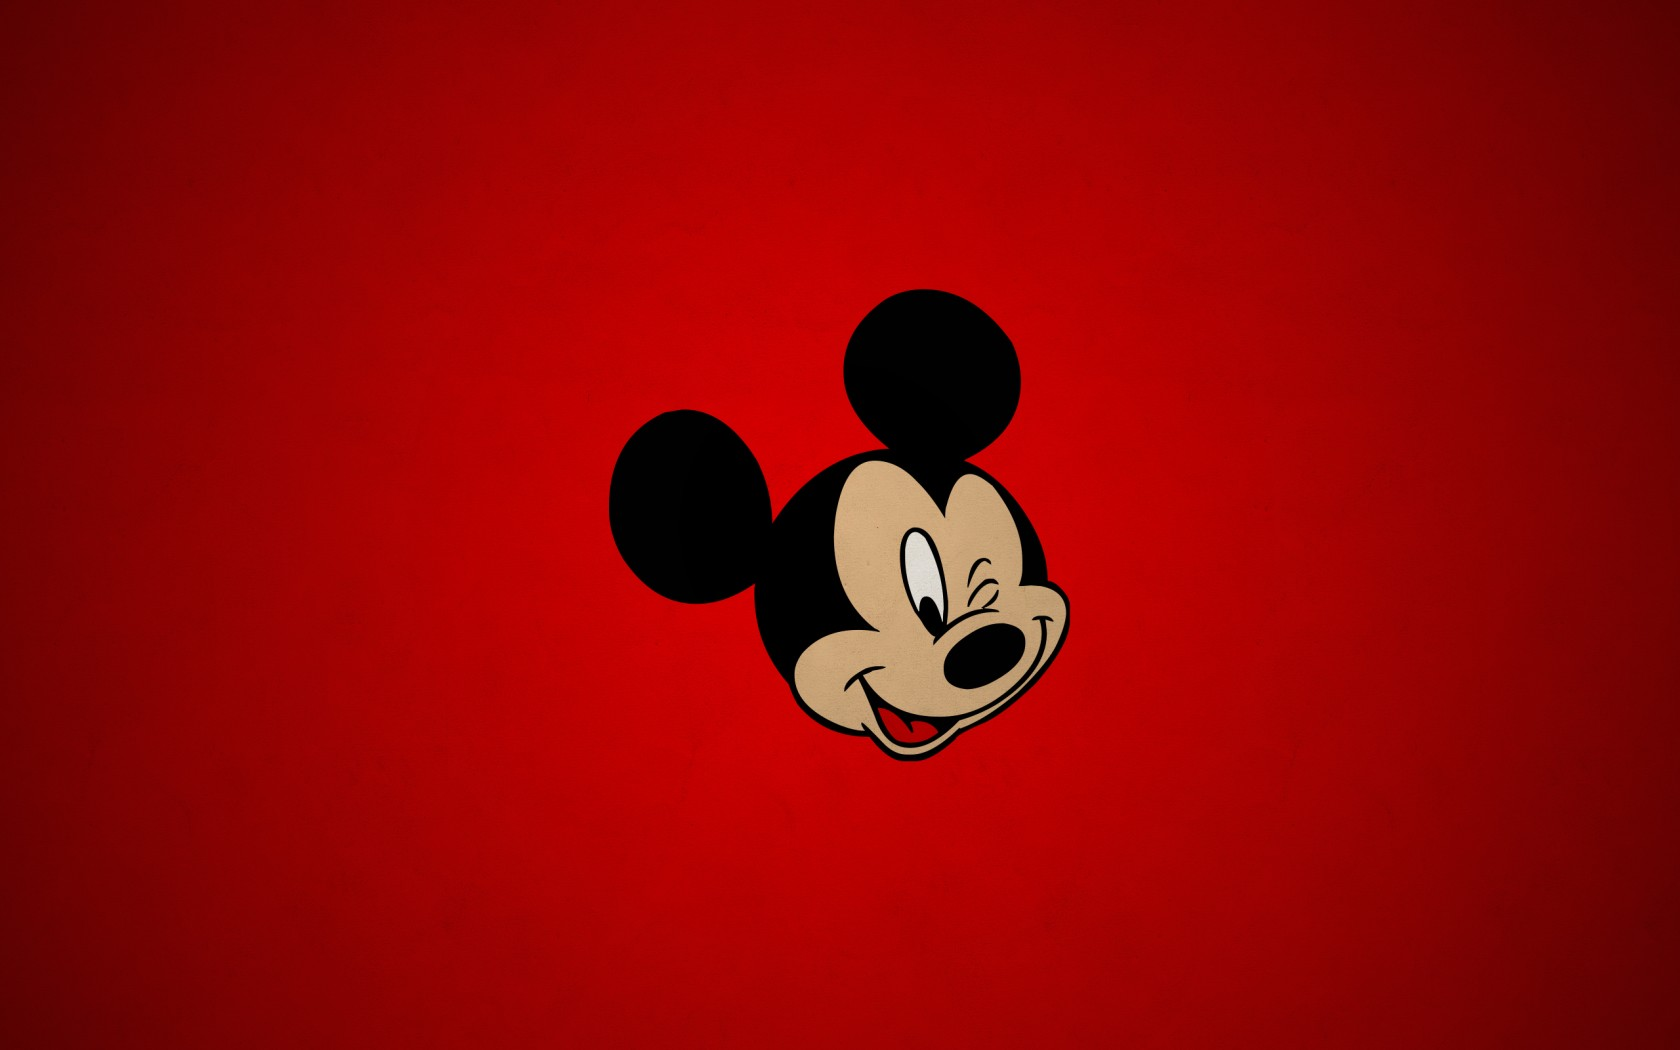 Mickey Mouse Red Background Wallpapers - 1680x1050 - 108431